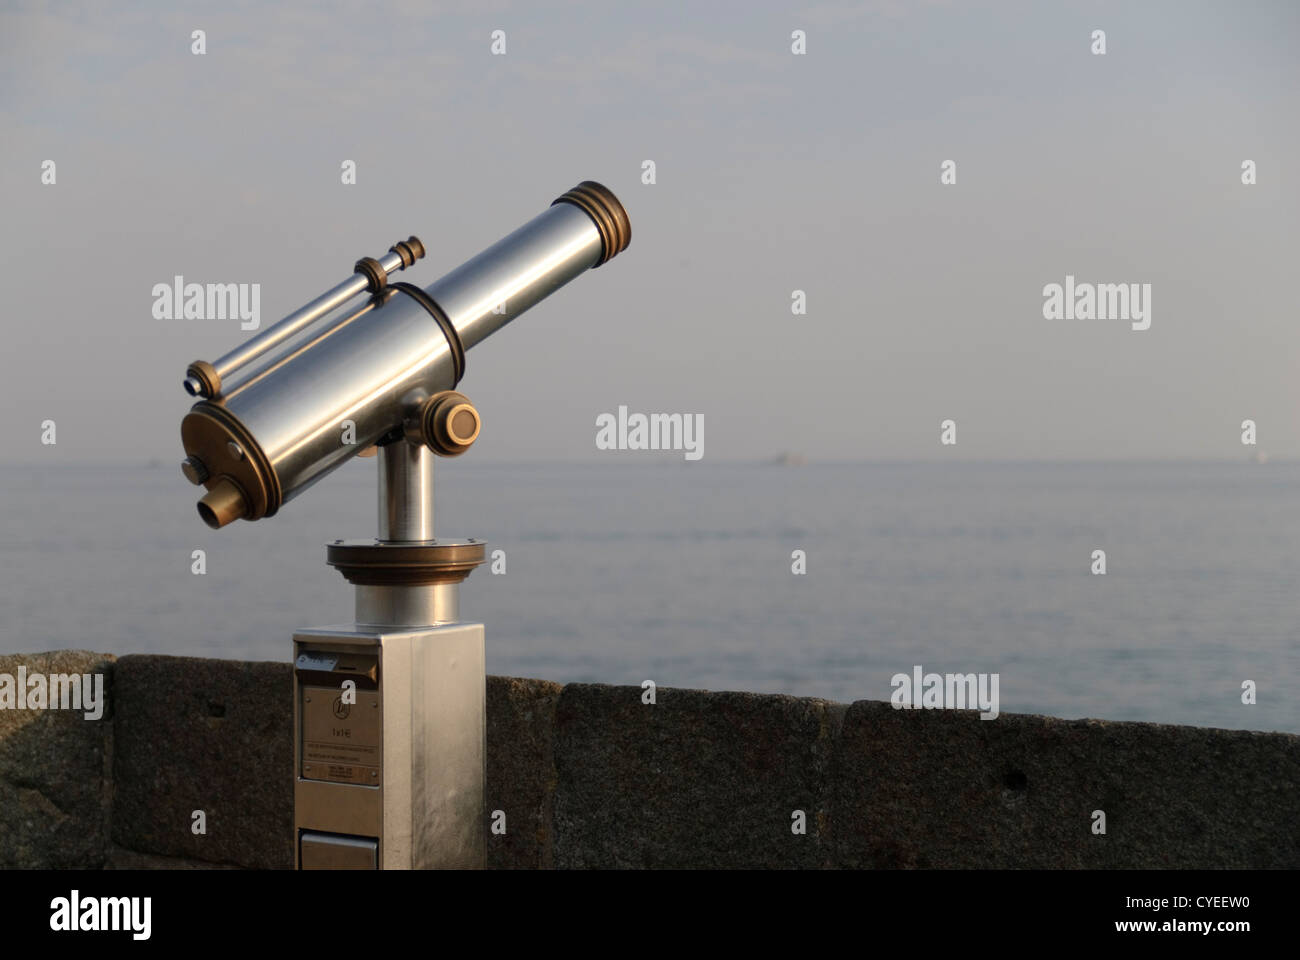 Public pay as you go telescope at a tourist attraction in france